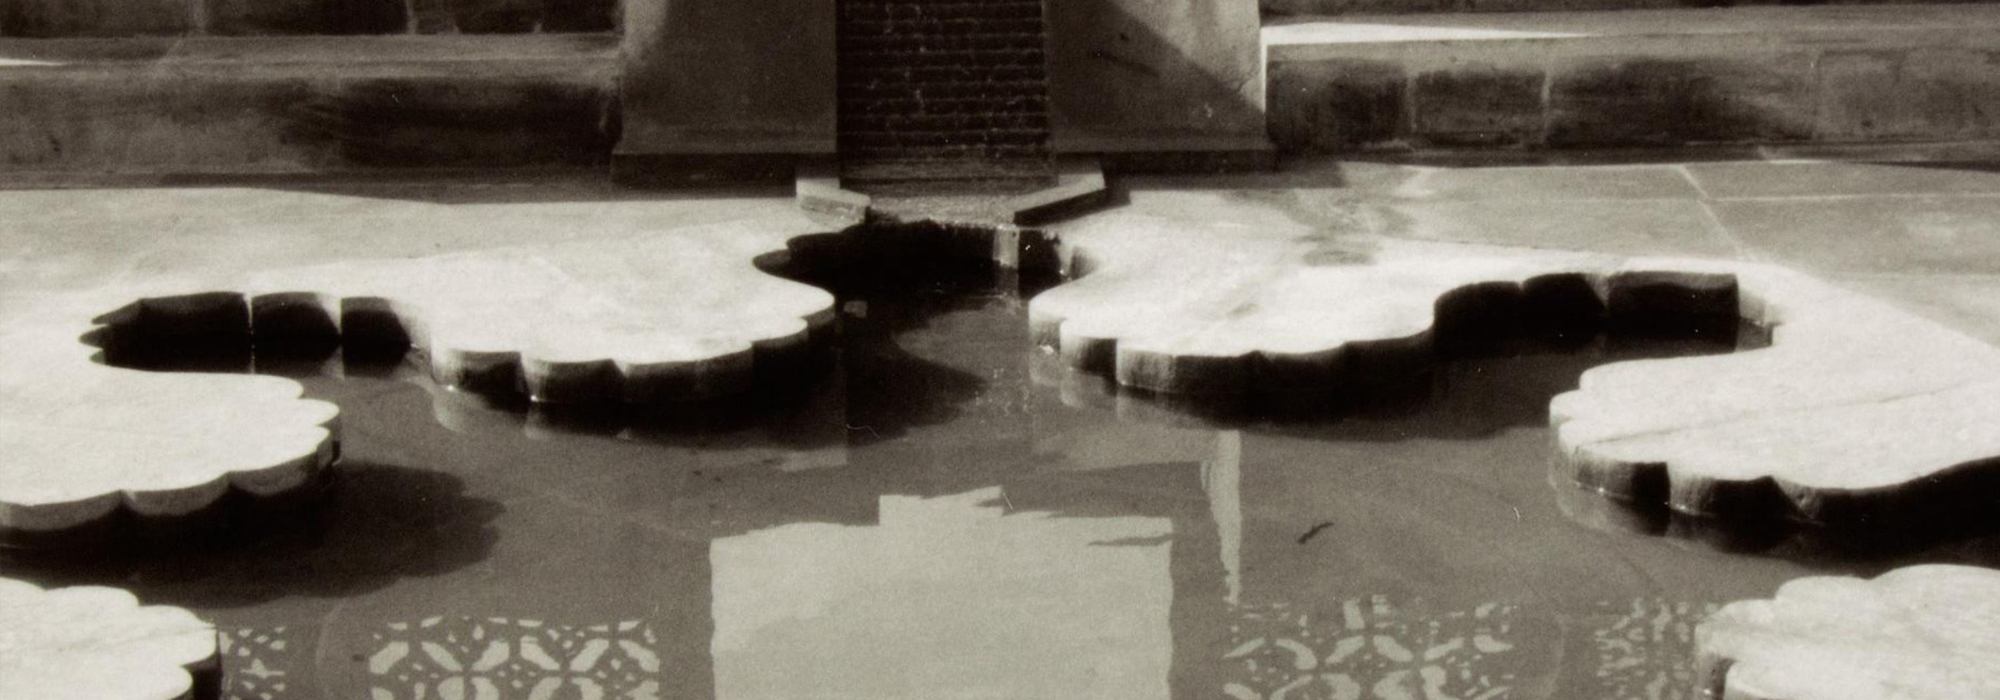 Black and white photograph of a rosette shaped reflecting pool.